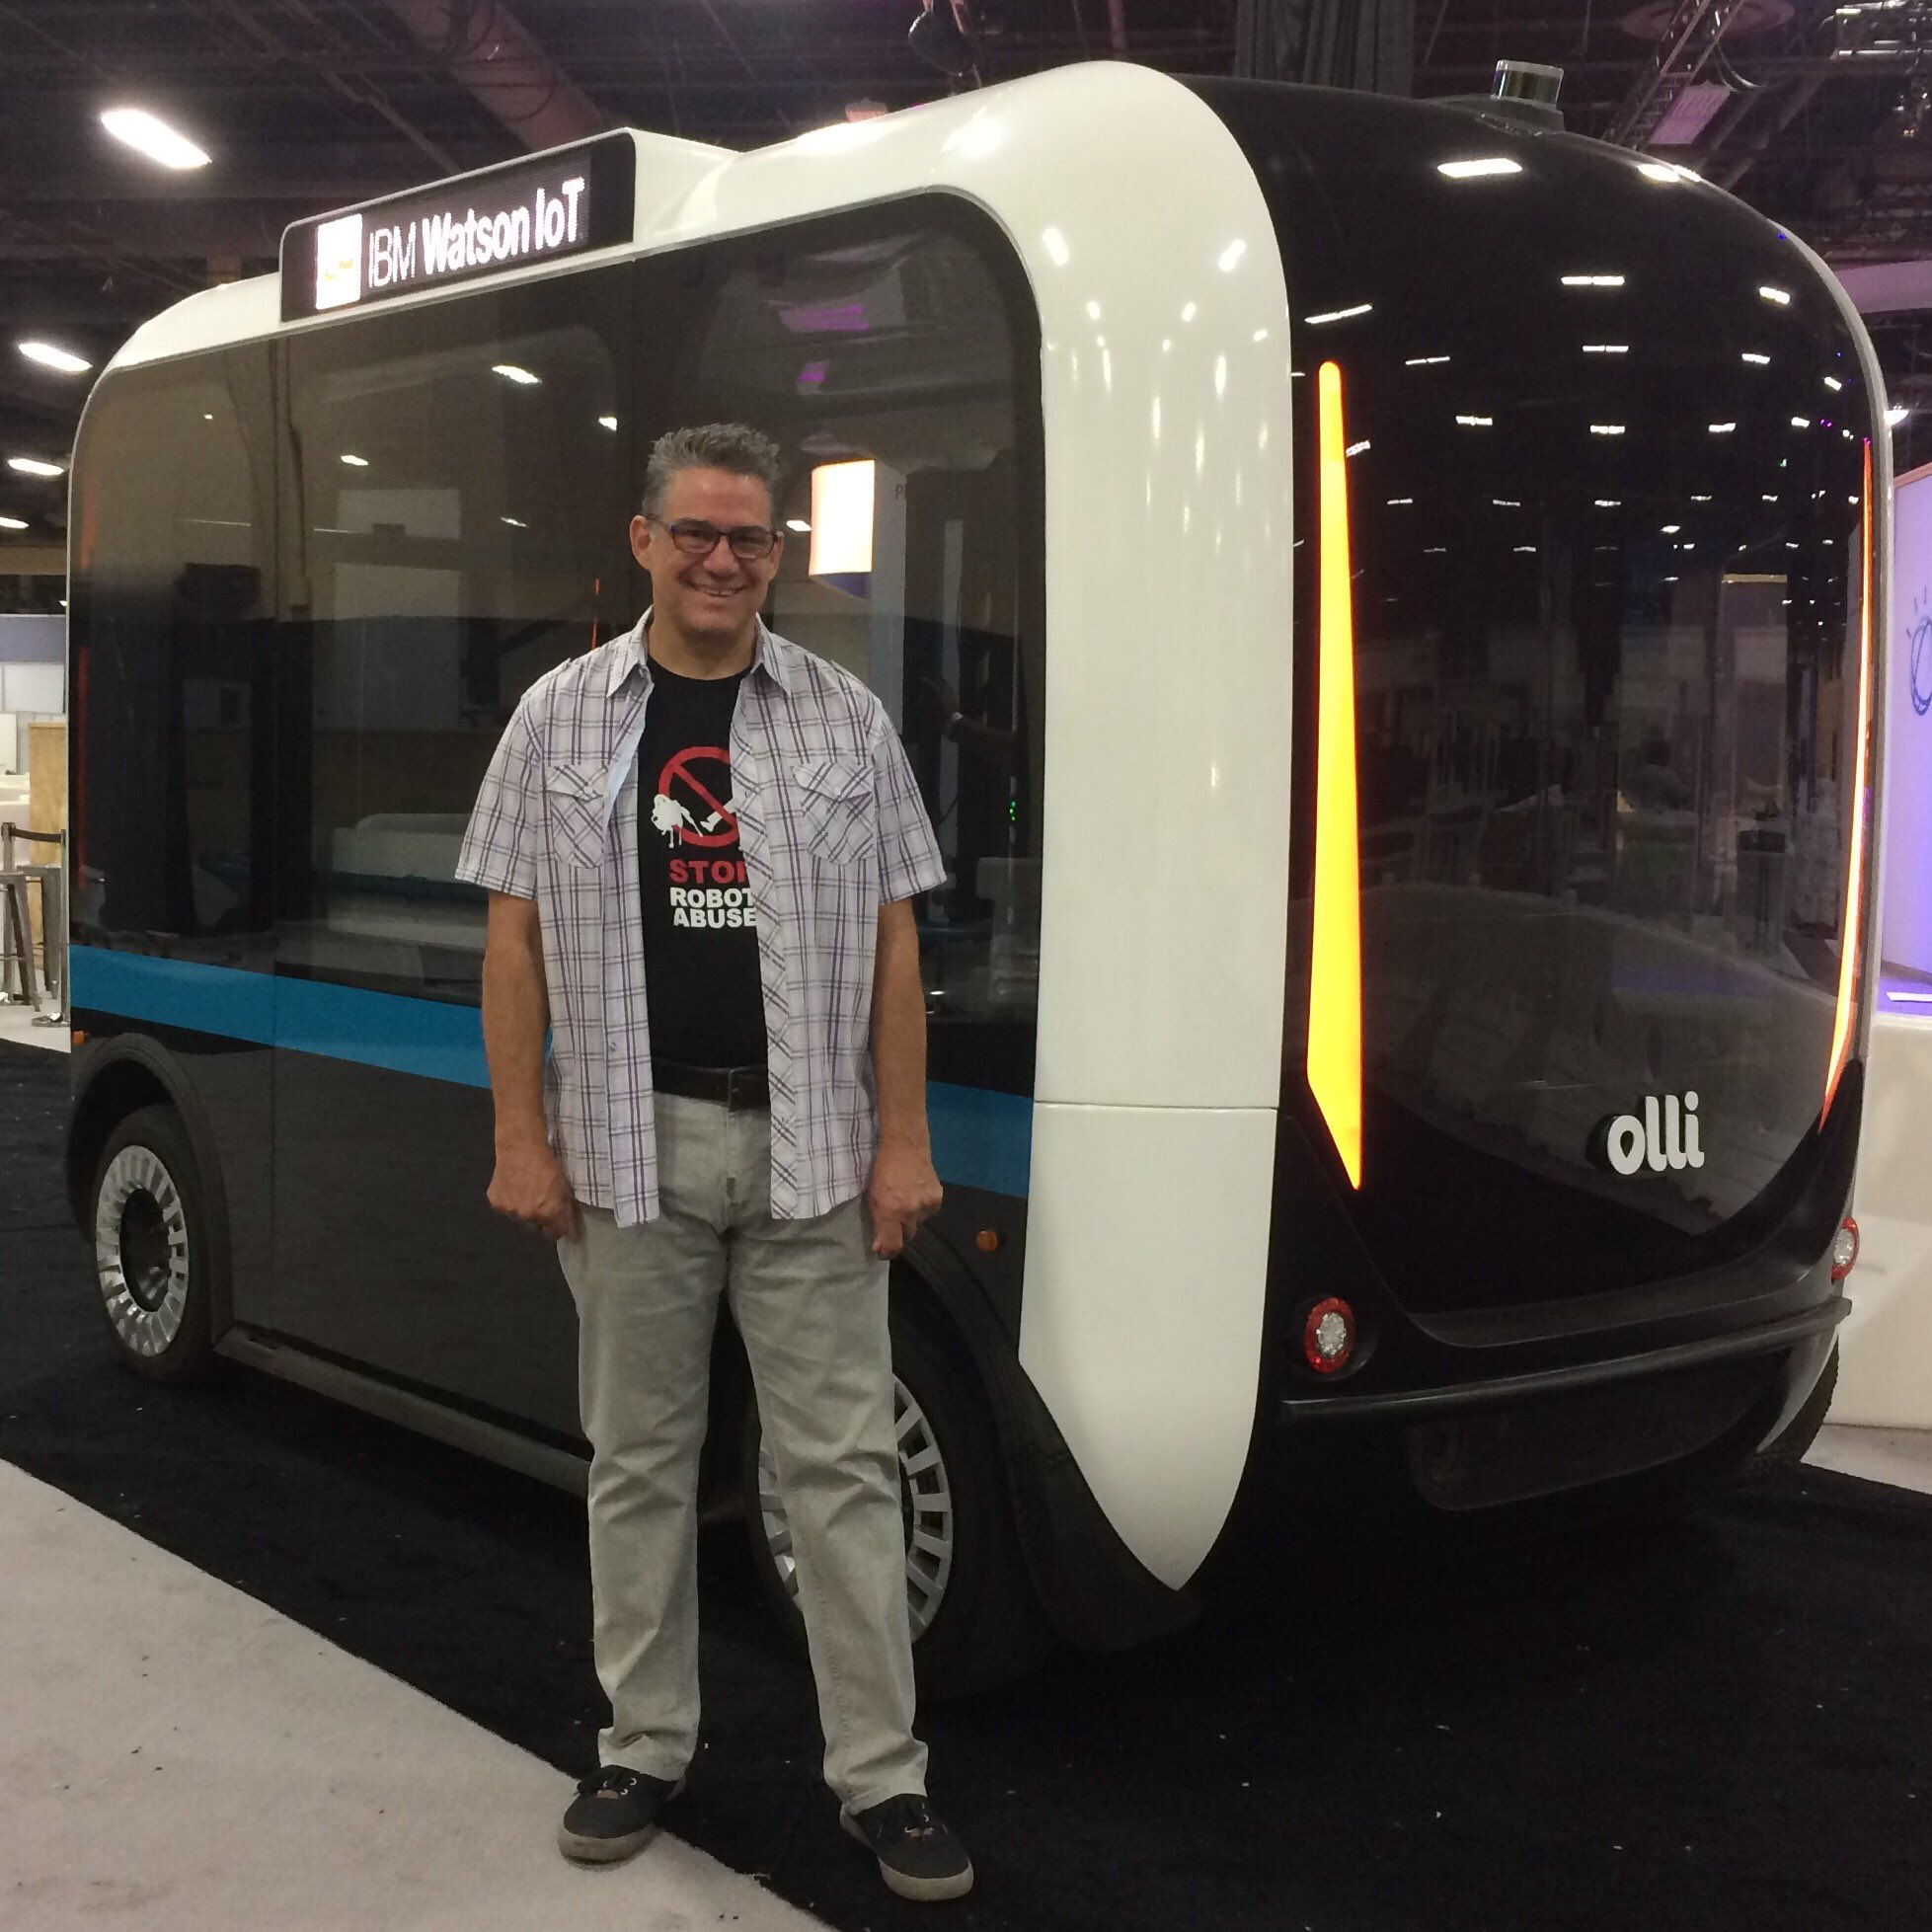 must #meetOlli at #ibmwow Monday 12PM 1743A https://t.co/P0sp99awoG https://t.co/e5YIF3HpOn